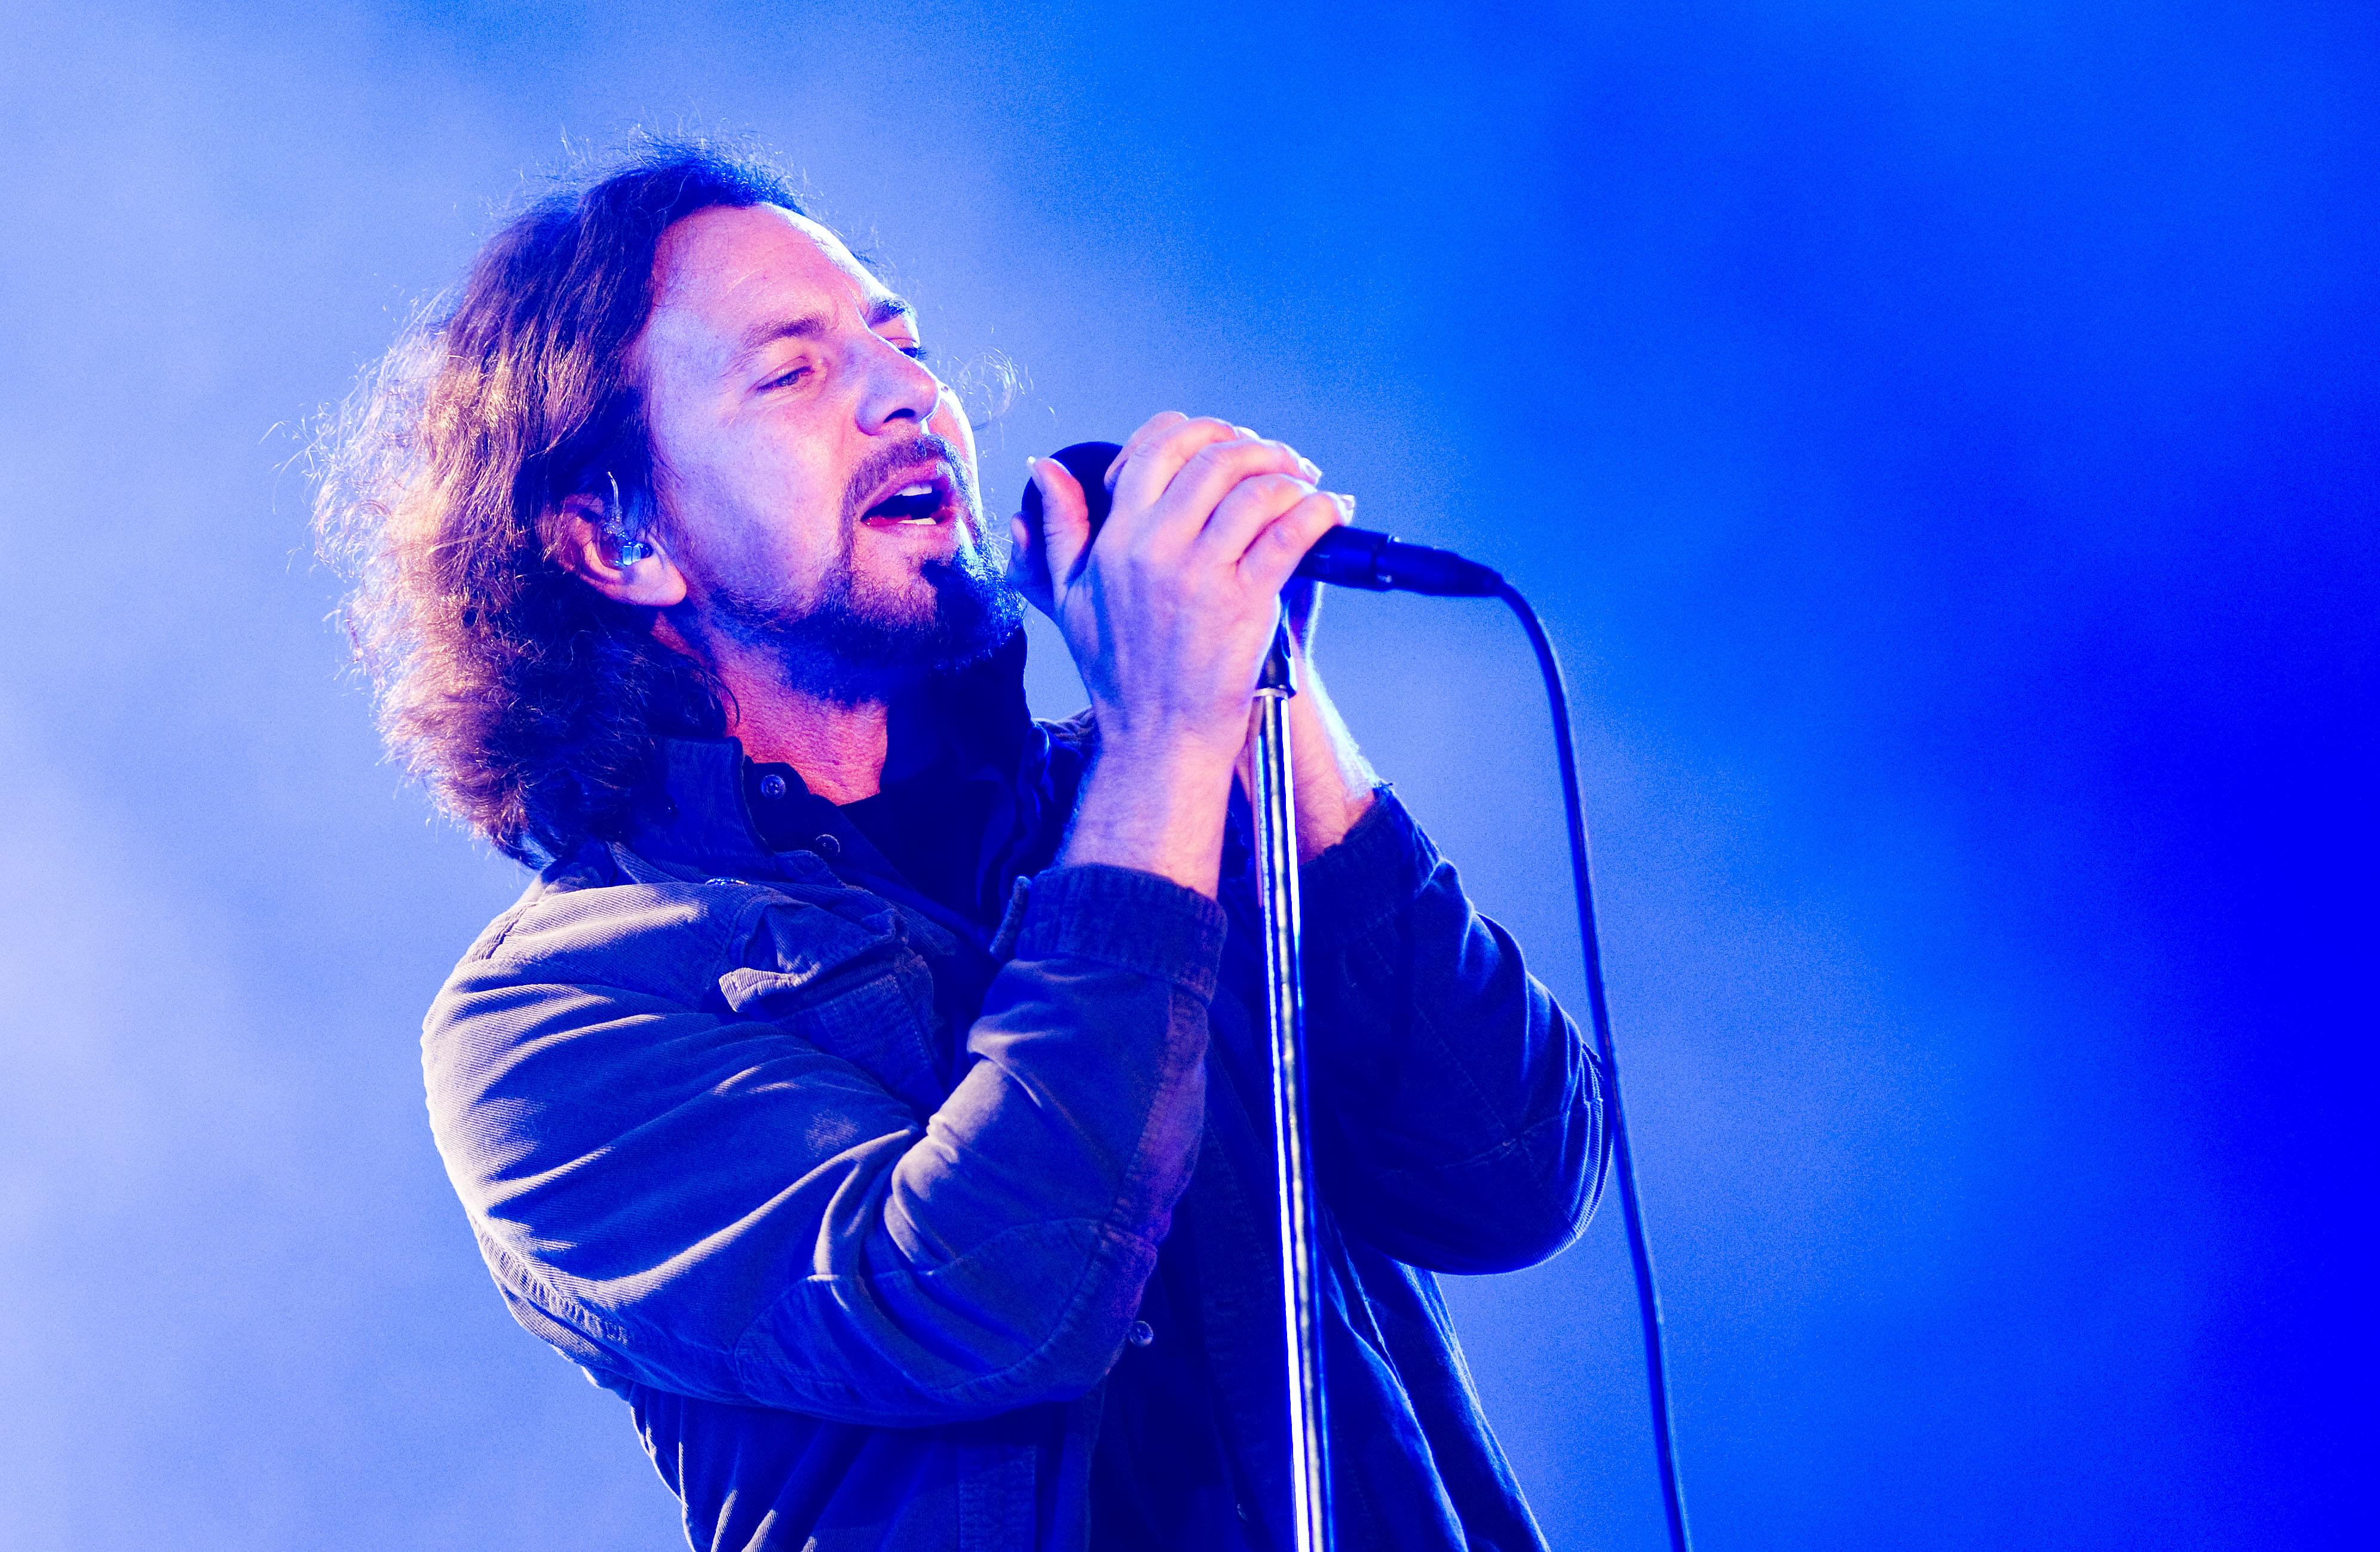 [Watch] Pearl Jam release new video for Dance of the Clairvoyants